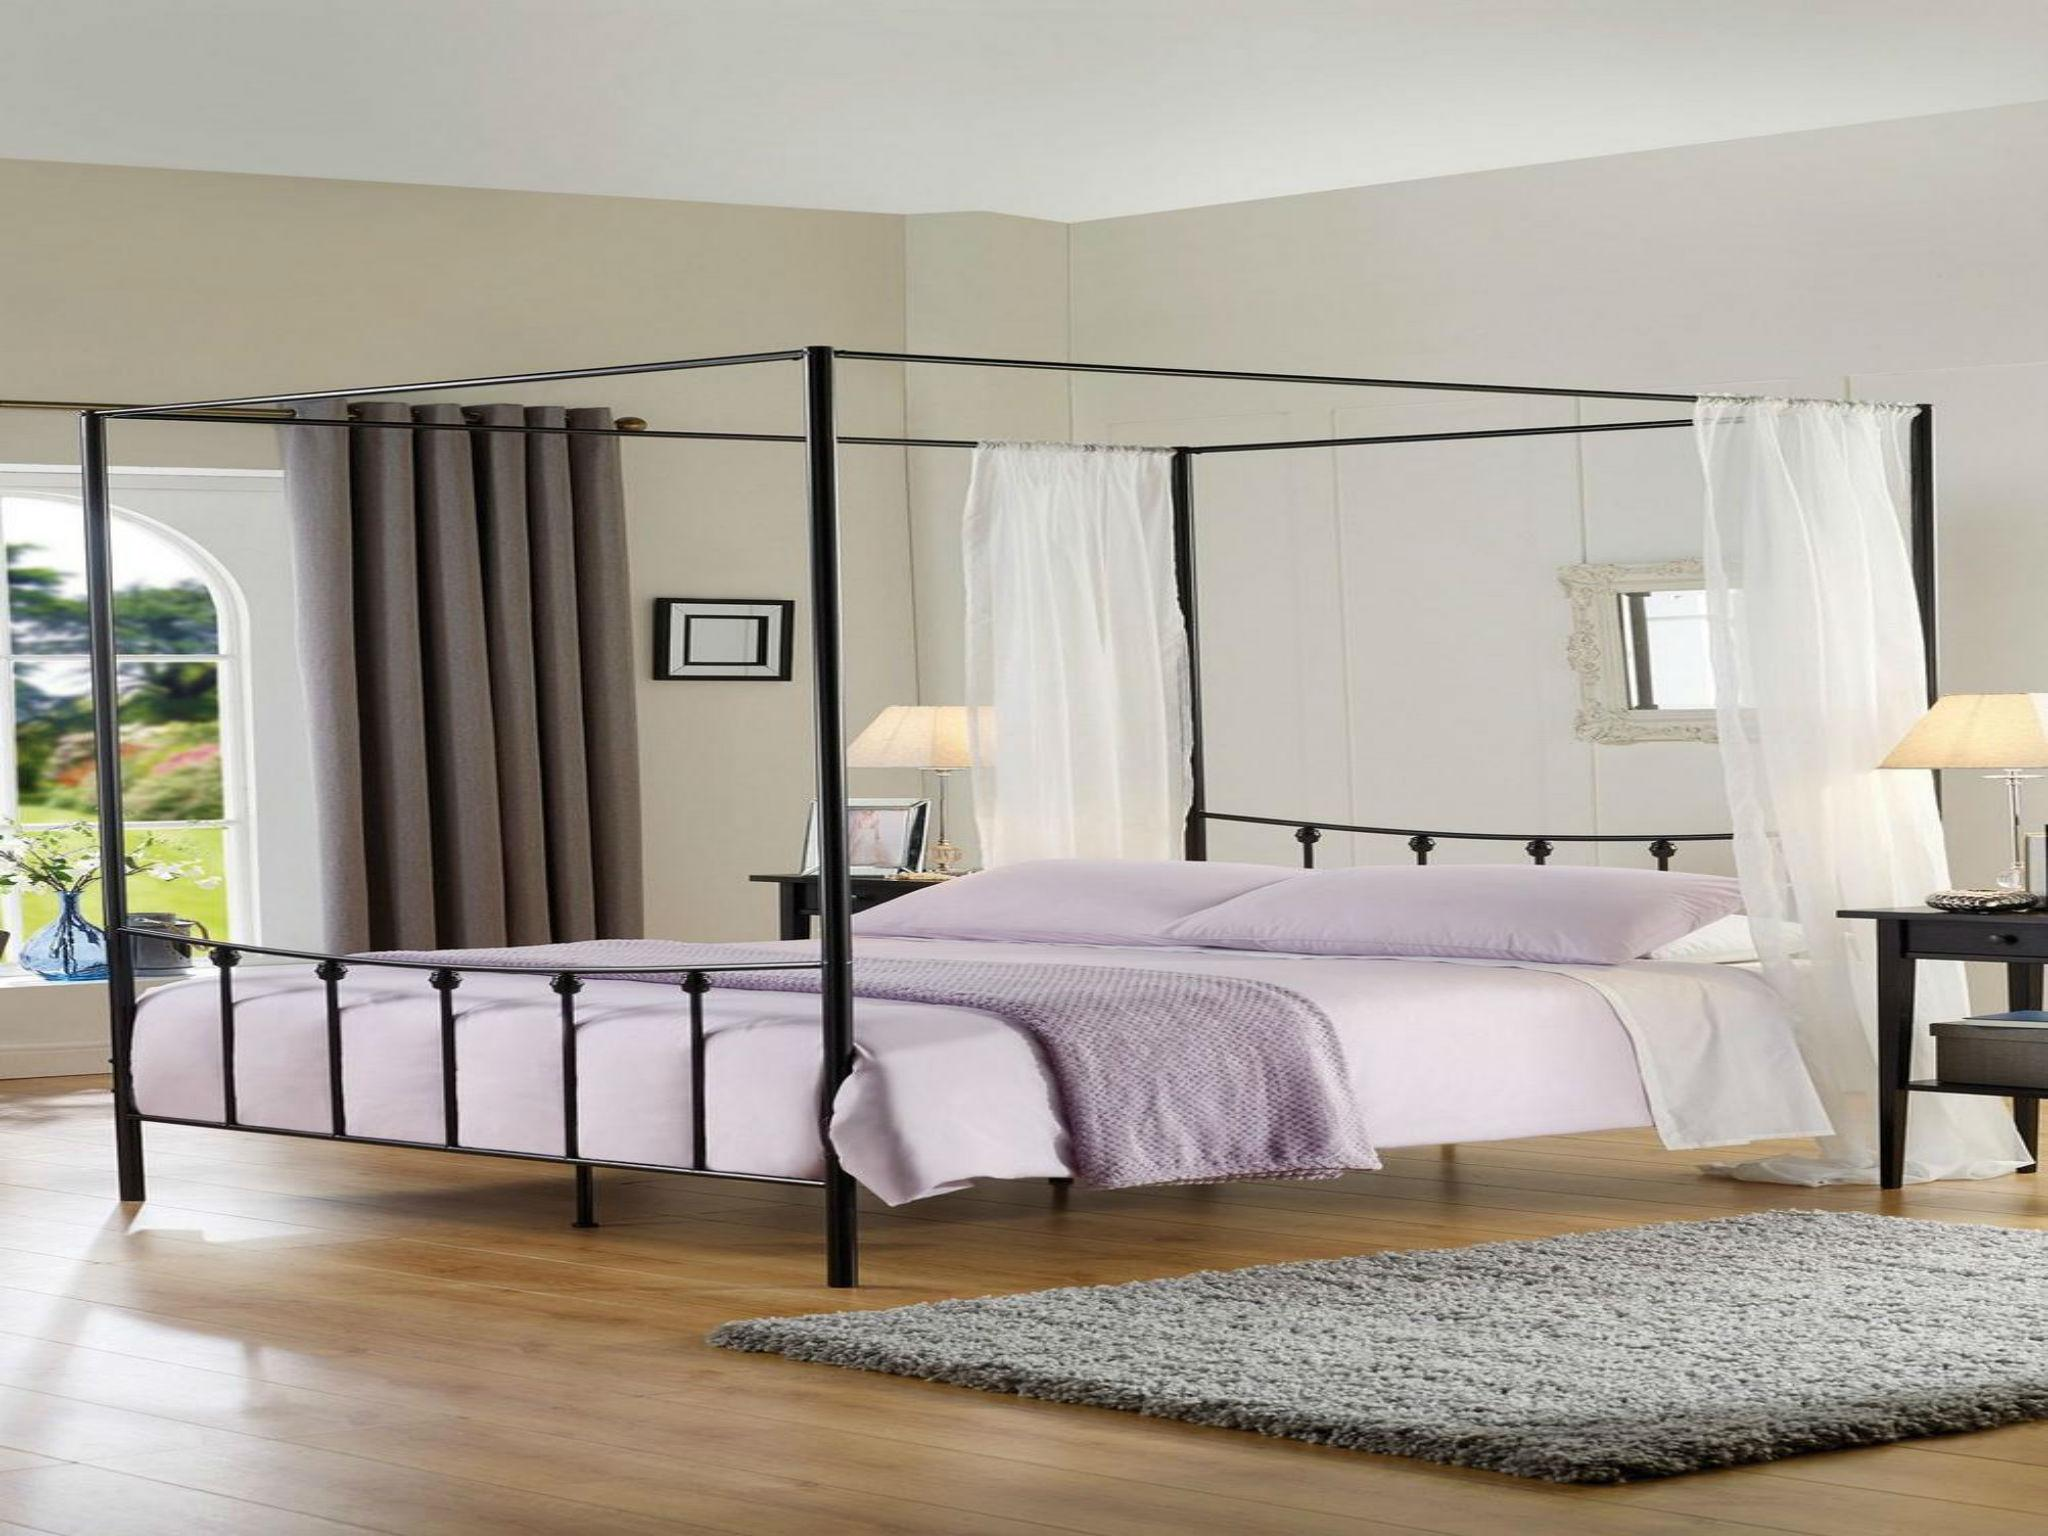 Clarissa Four Poster Bed With Mattress From 13999, Studio